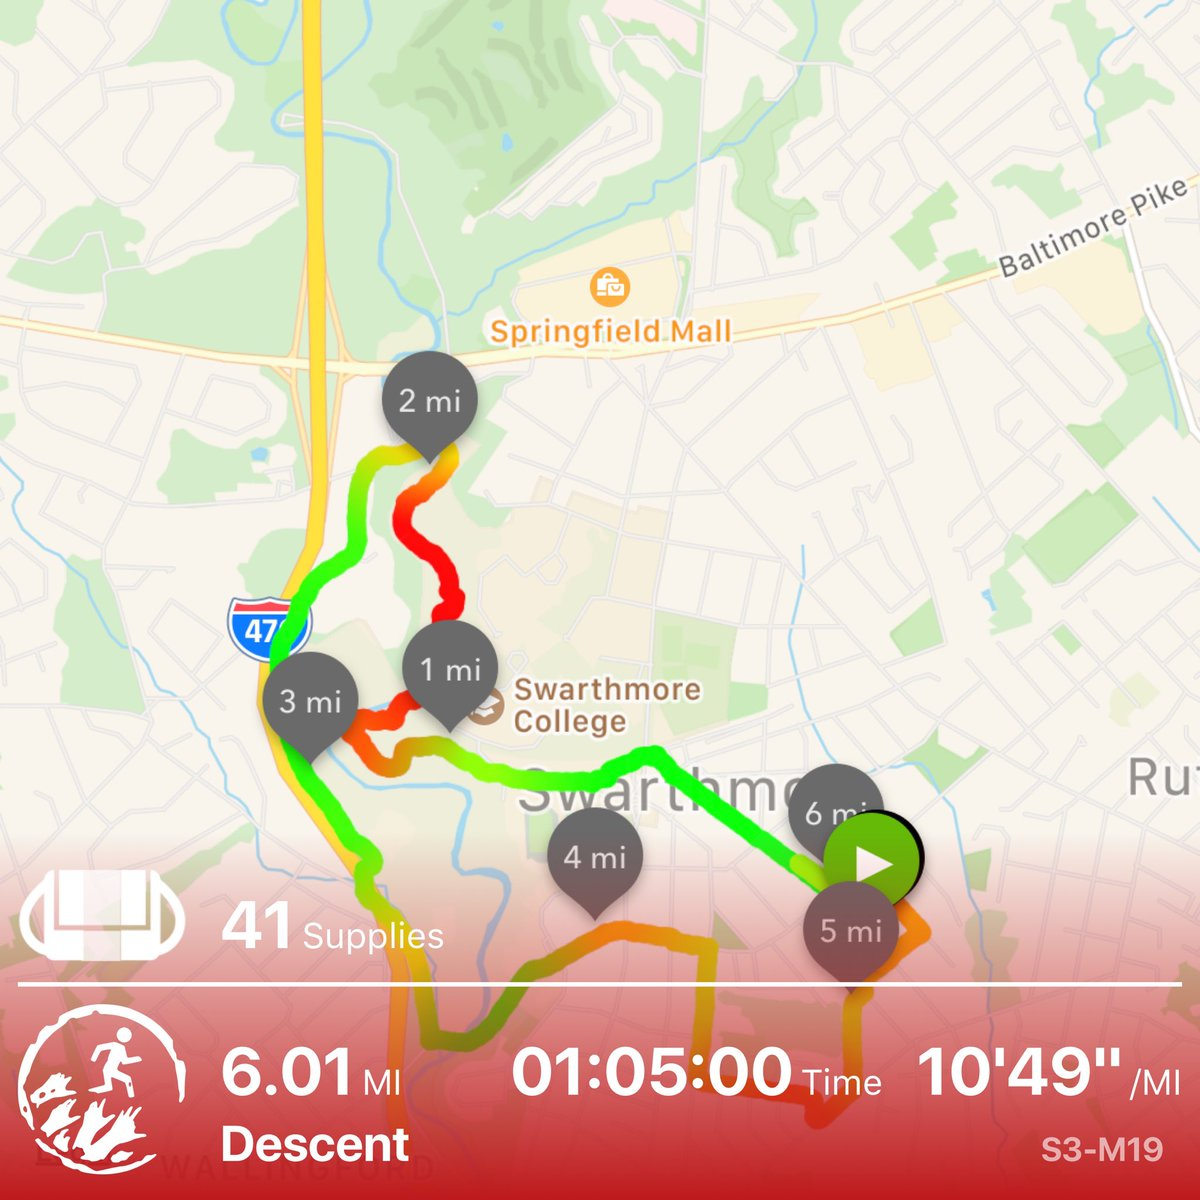 Made a dramatic escape from the zoms surrounding the treetop base #zombiesrun pic.twitter.com/zKDINGhKyS